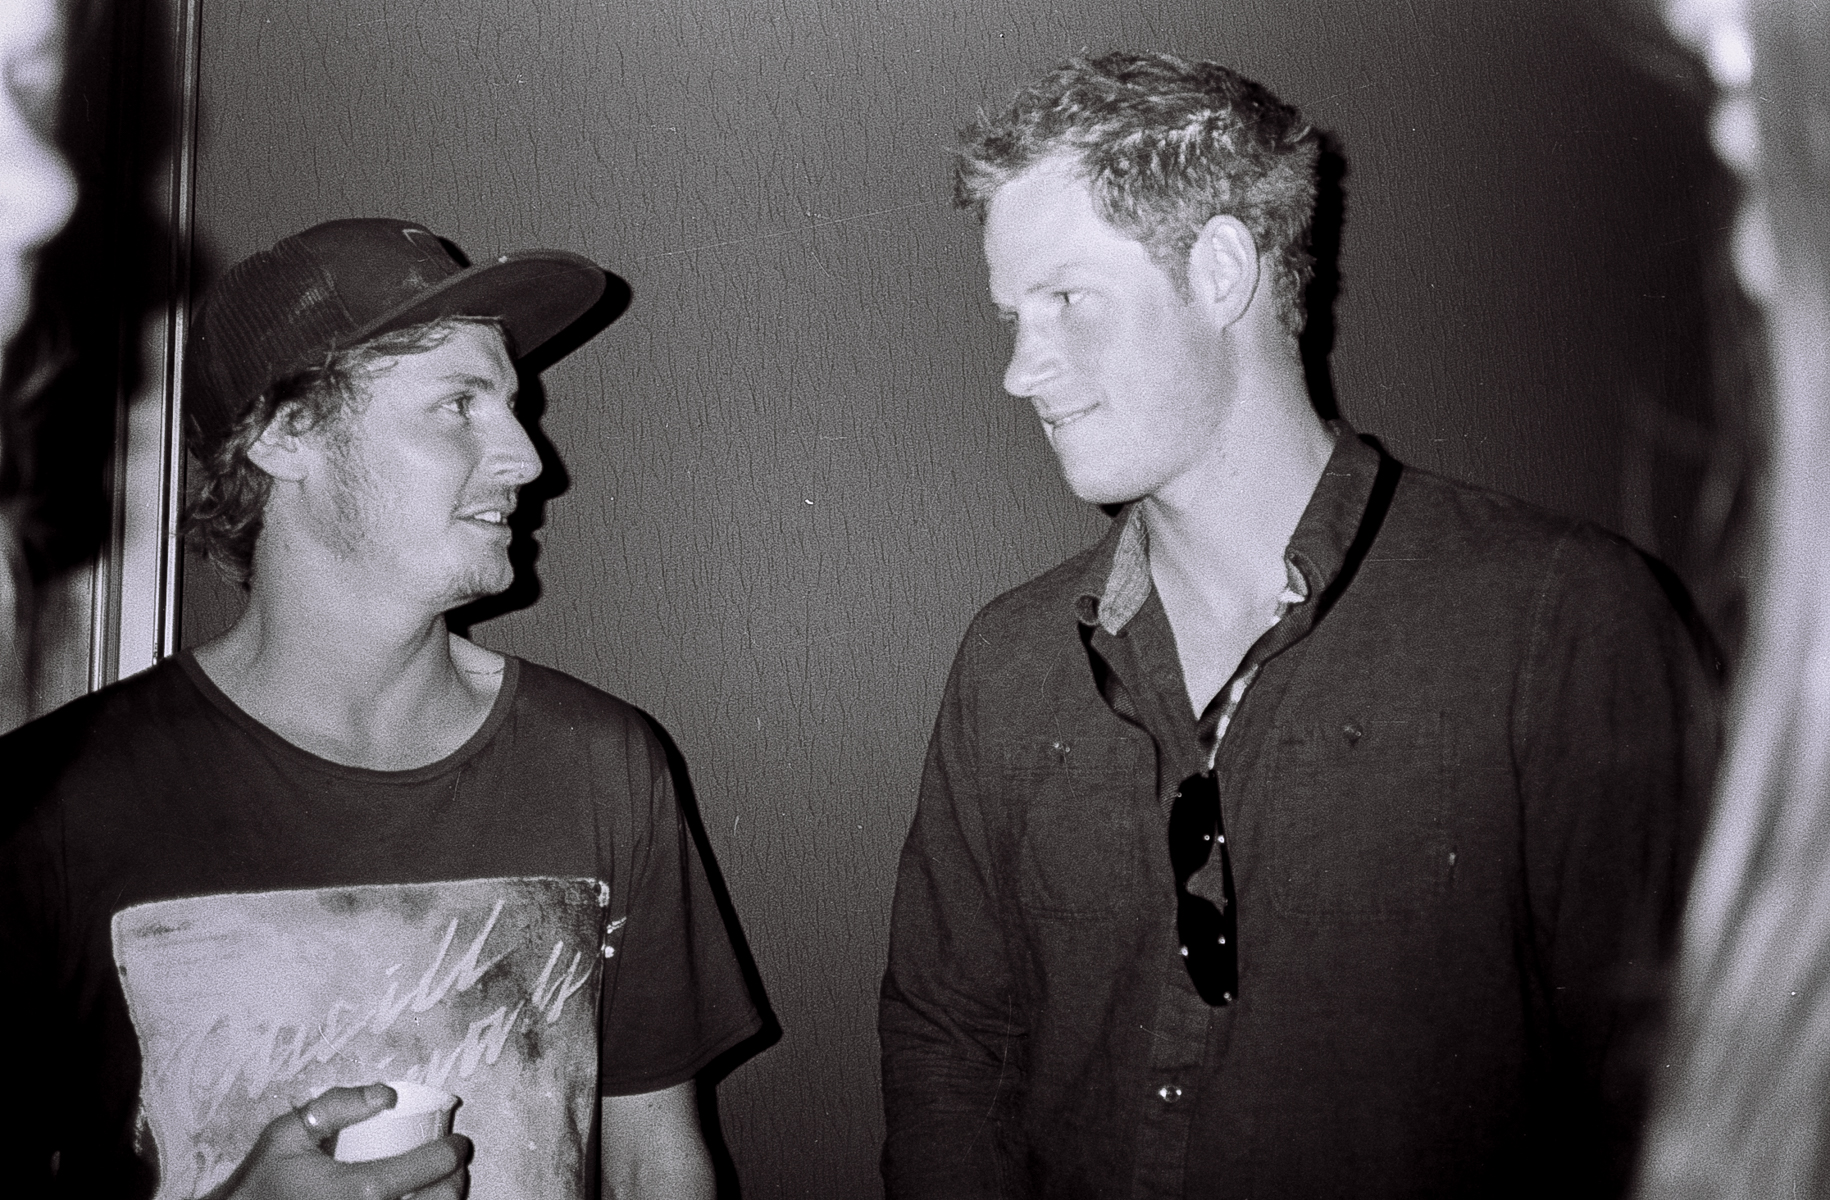 Ben Howard and Prince Harry